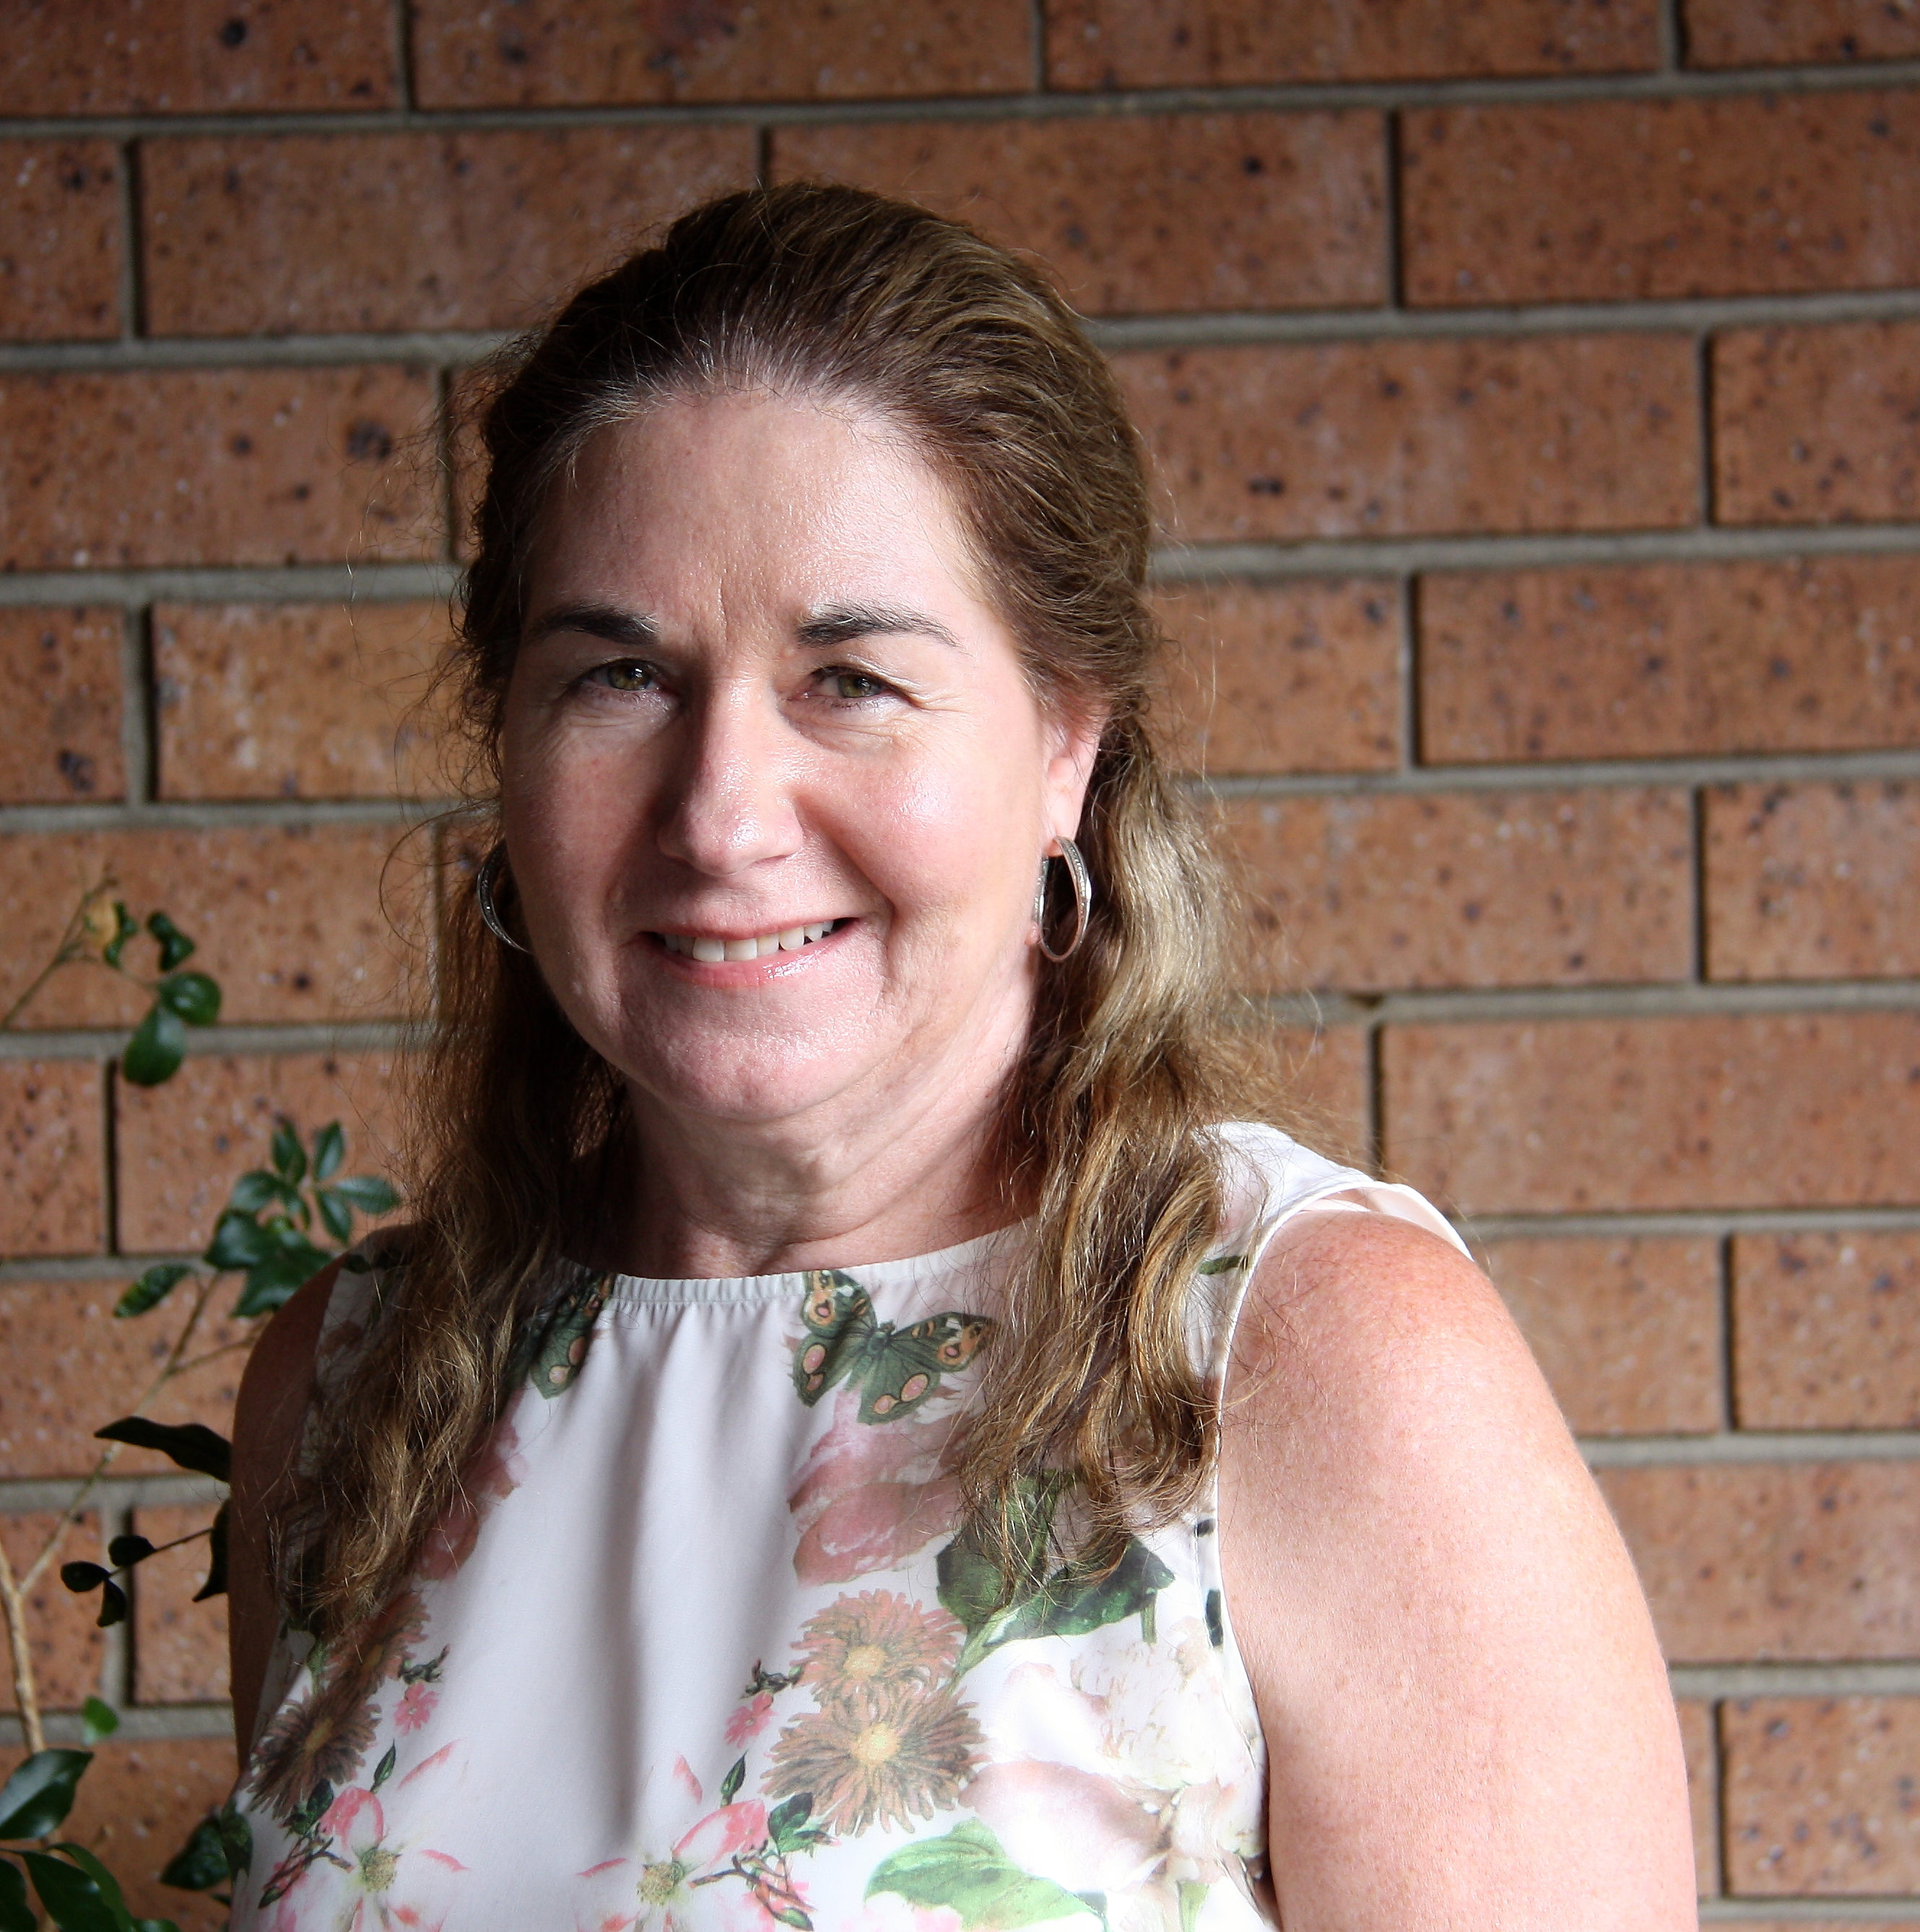 about us mje business services megan has been working in the accounting and finance industry since 1984 embracing commercial and public accounting taxation and audit experience